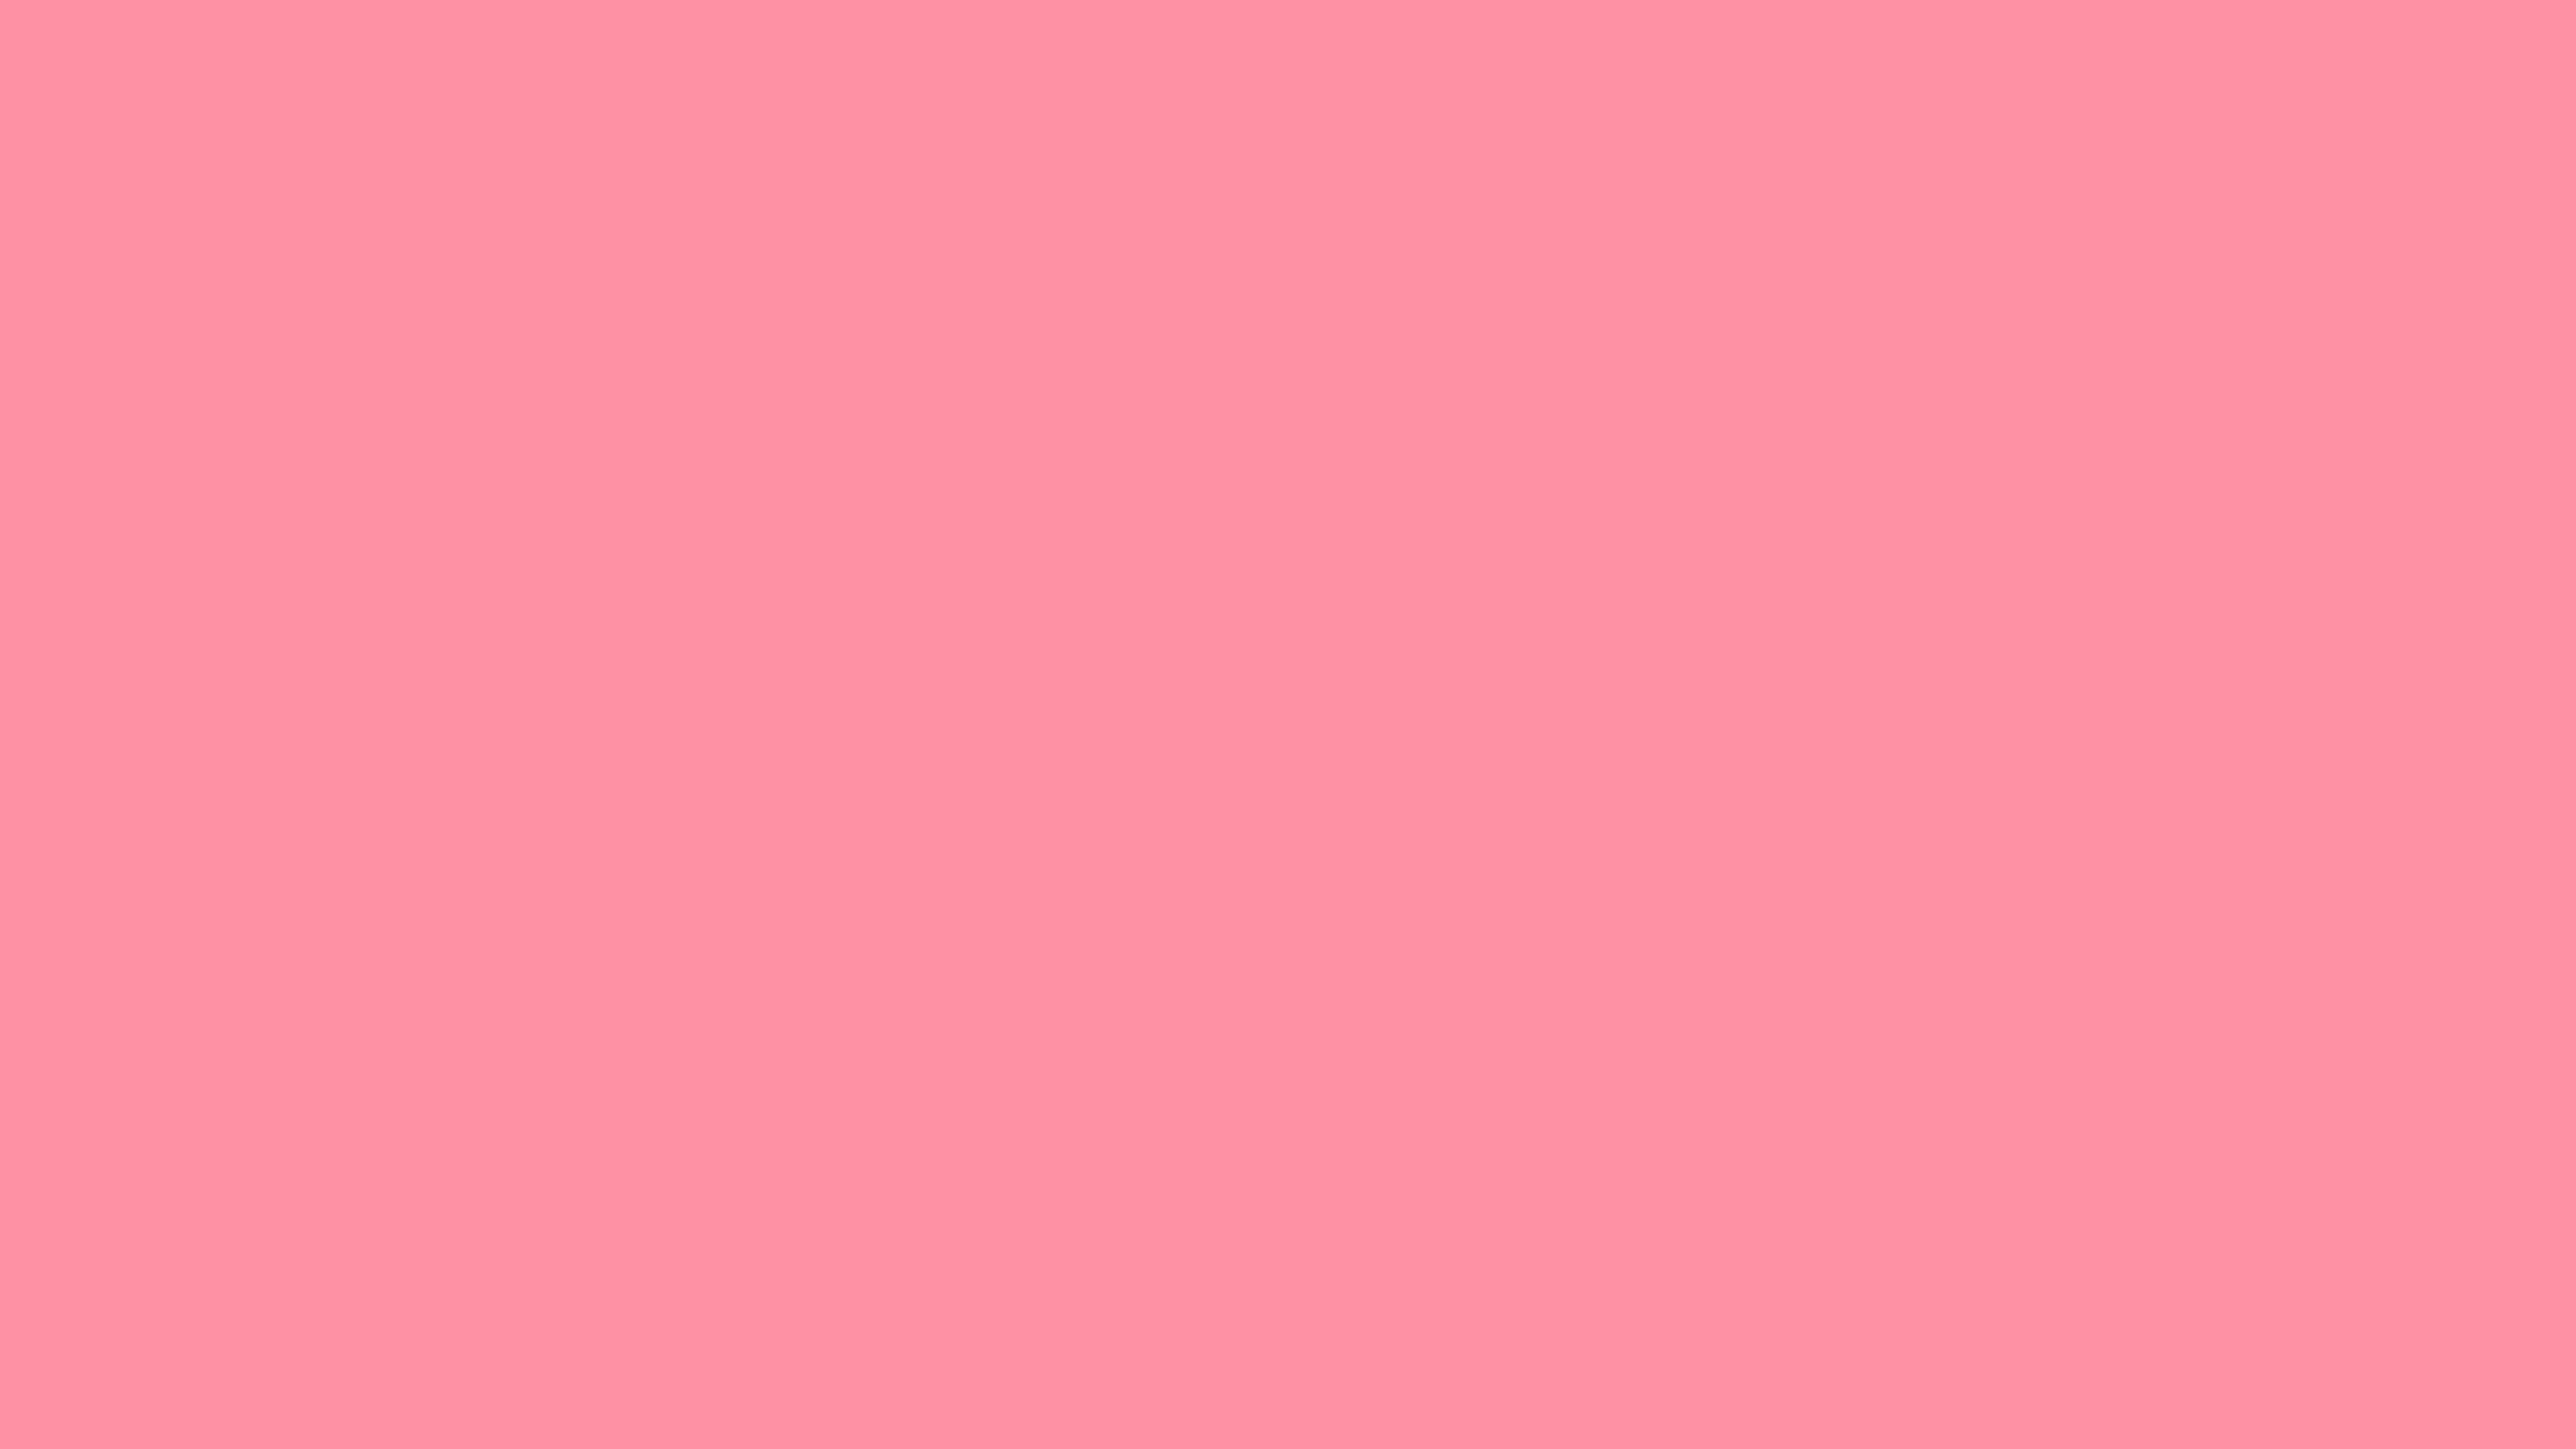 4096x2304 Salmon Pink Solid Color Background